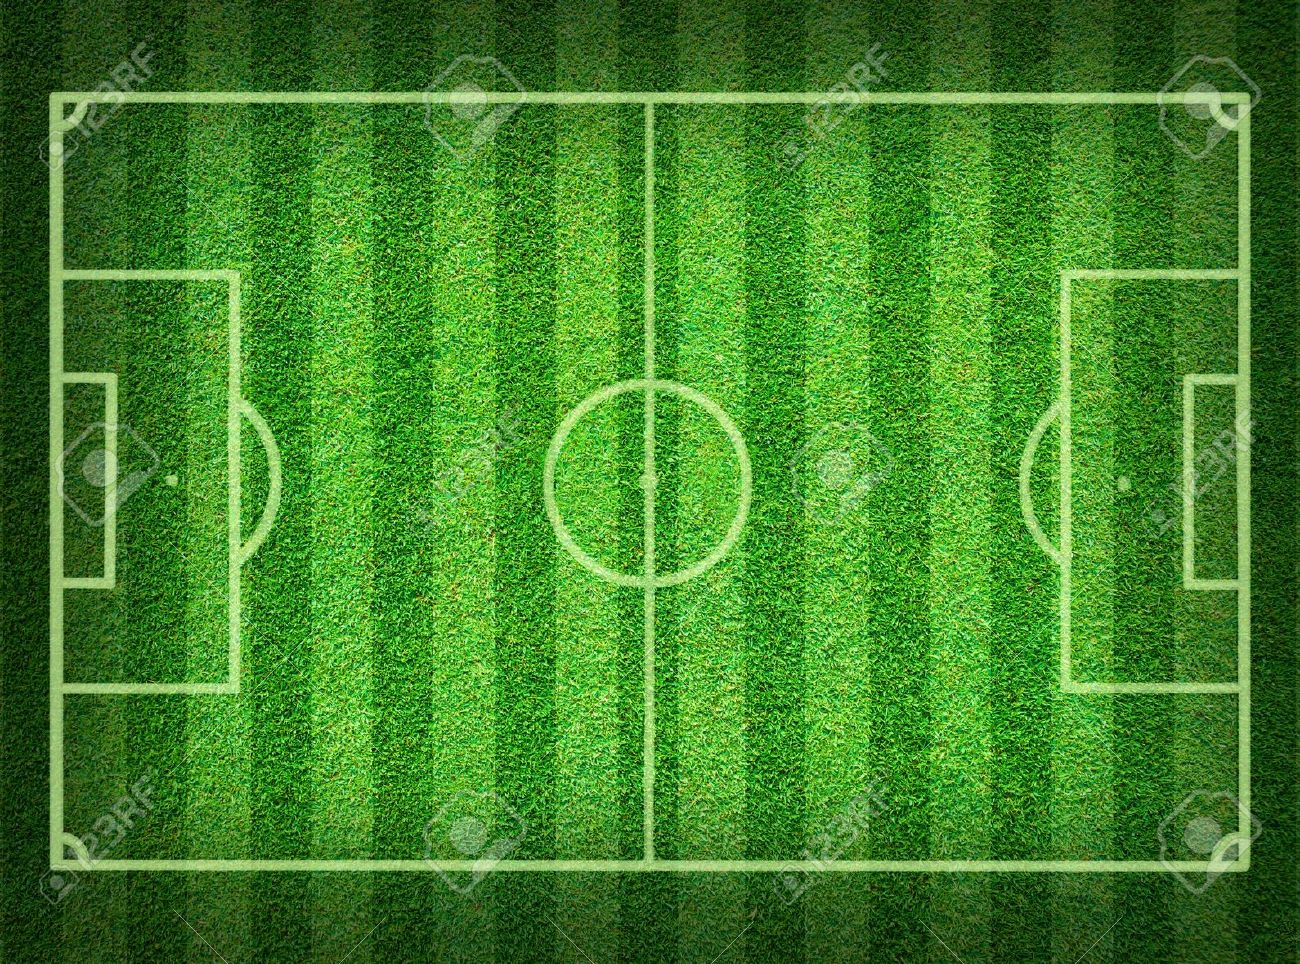 Real green grass soccer field background Stock Photo - 9520052